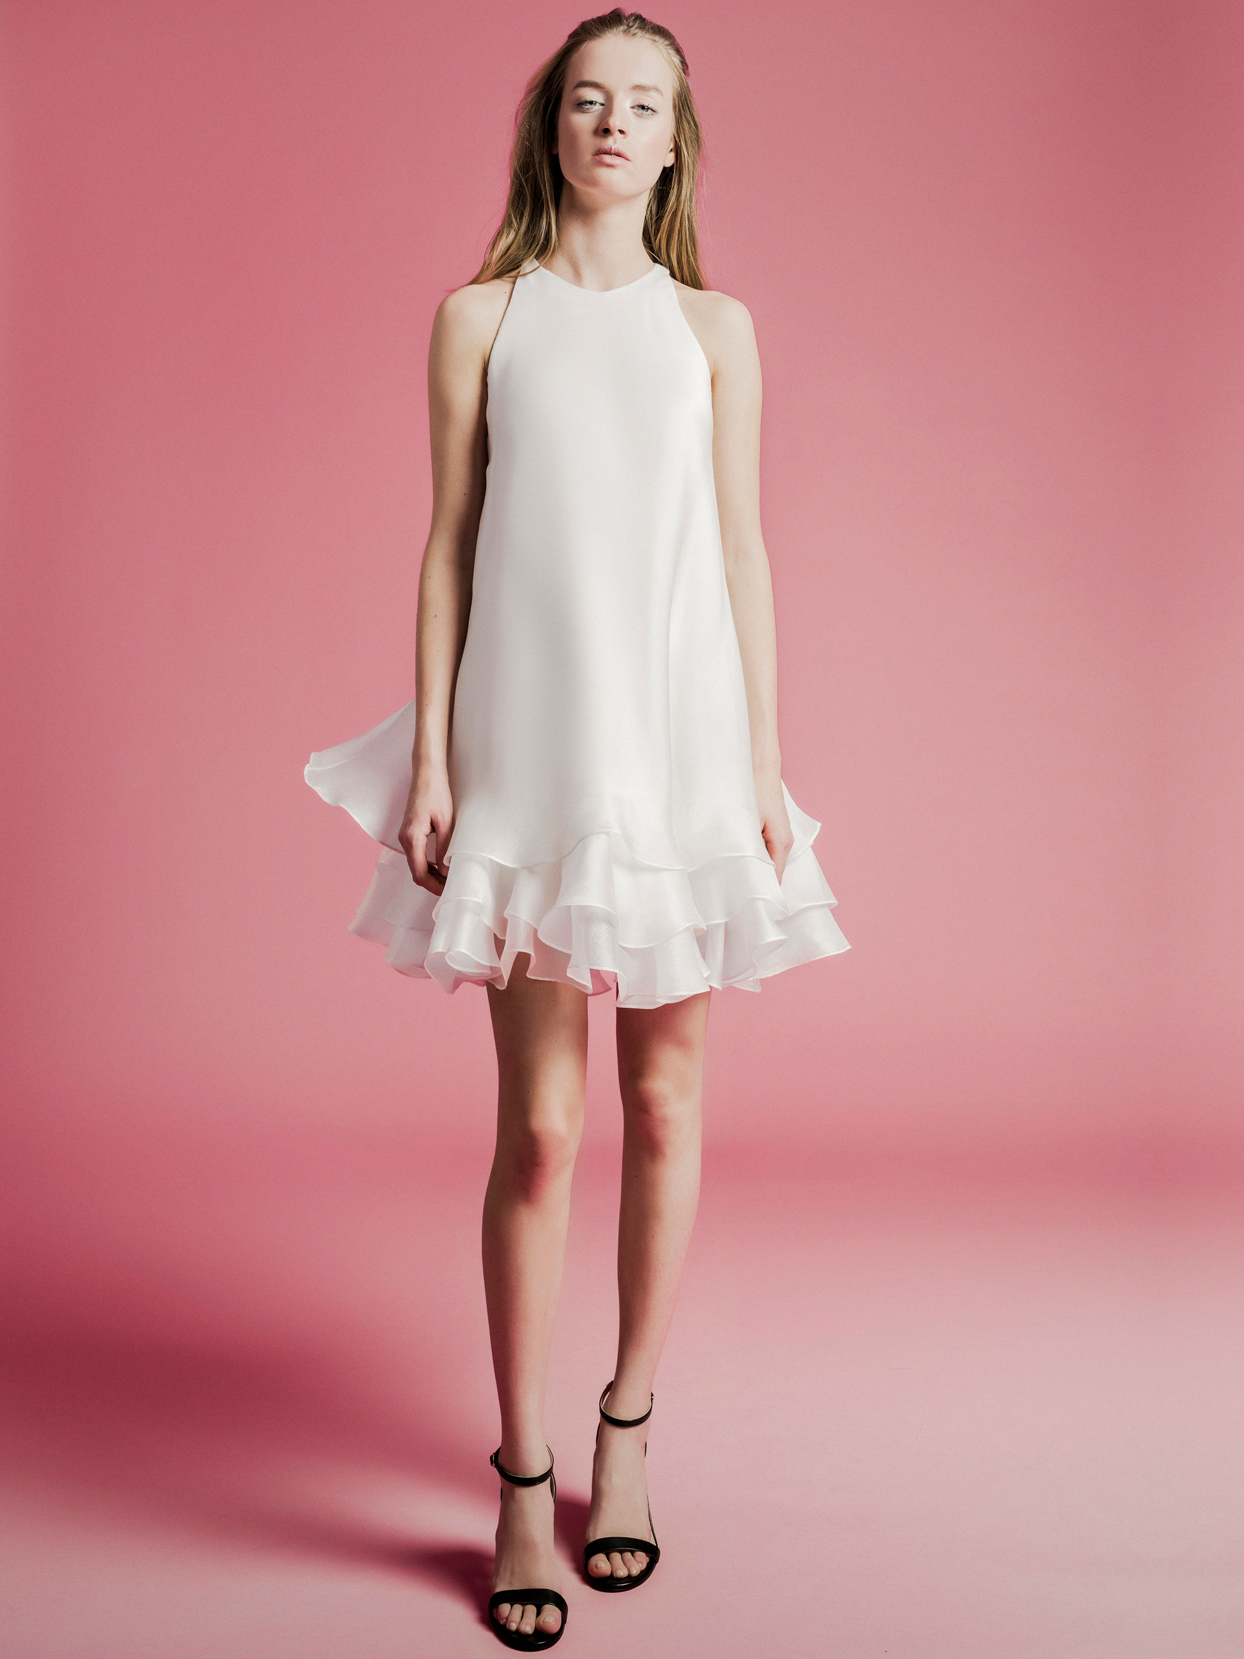 Sophie Et Voilà short ruffled high neck wedding dress spring 2021